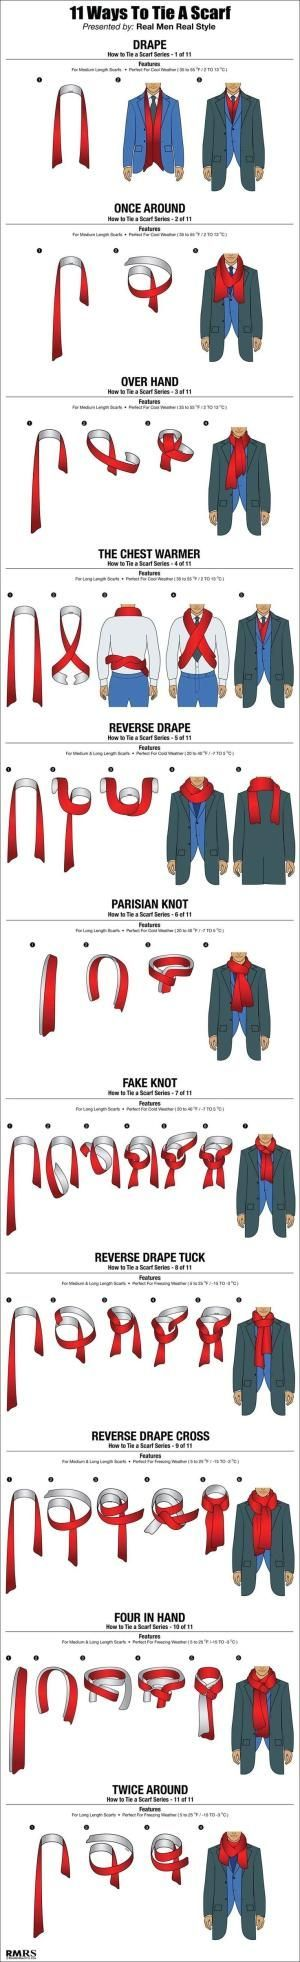 How to tie a scarf by alexis